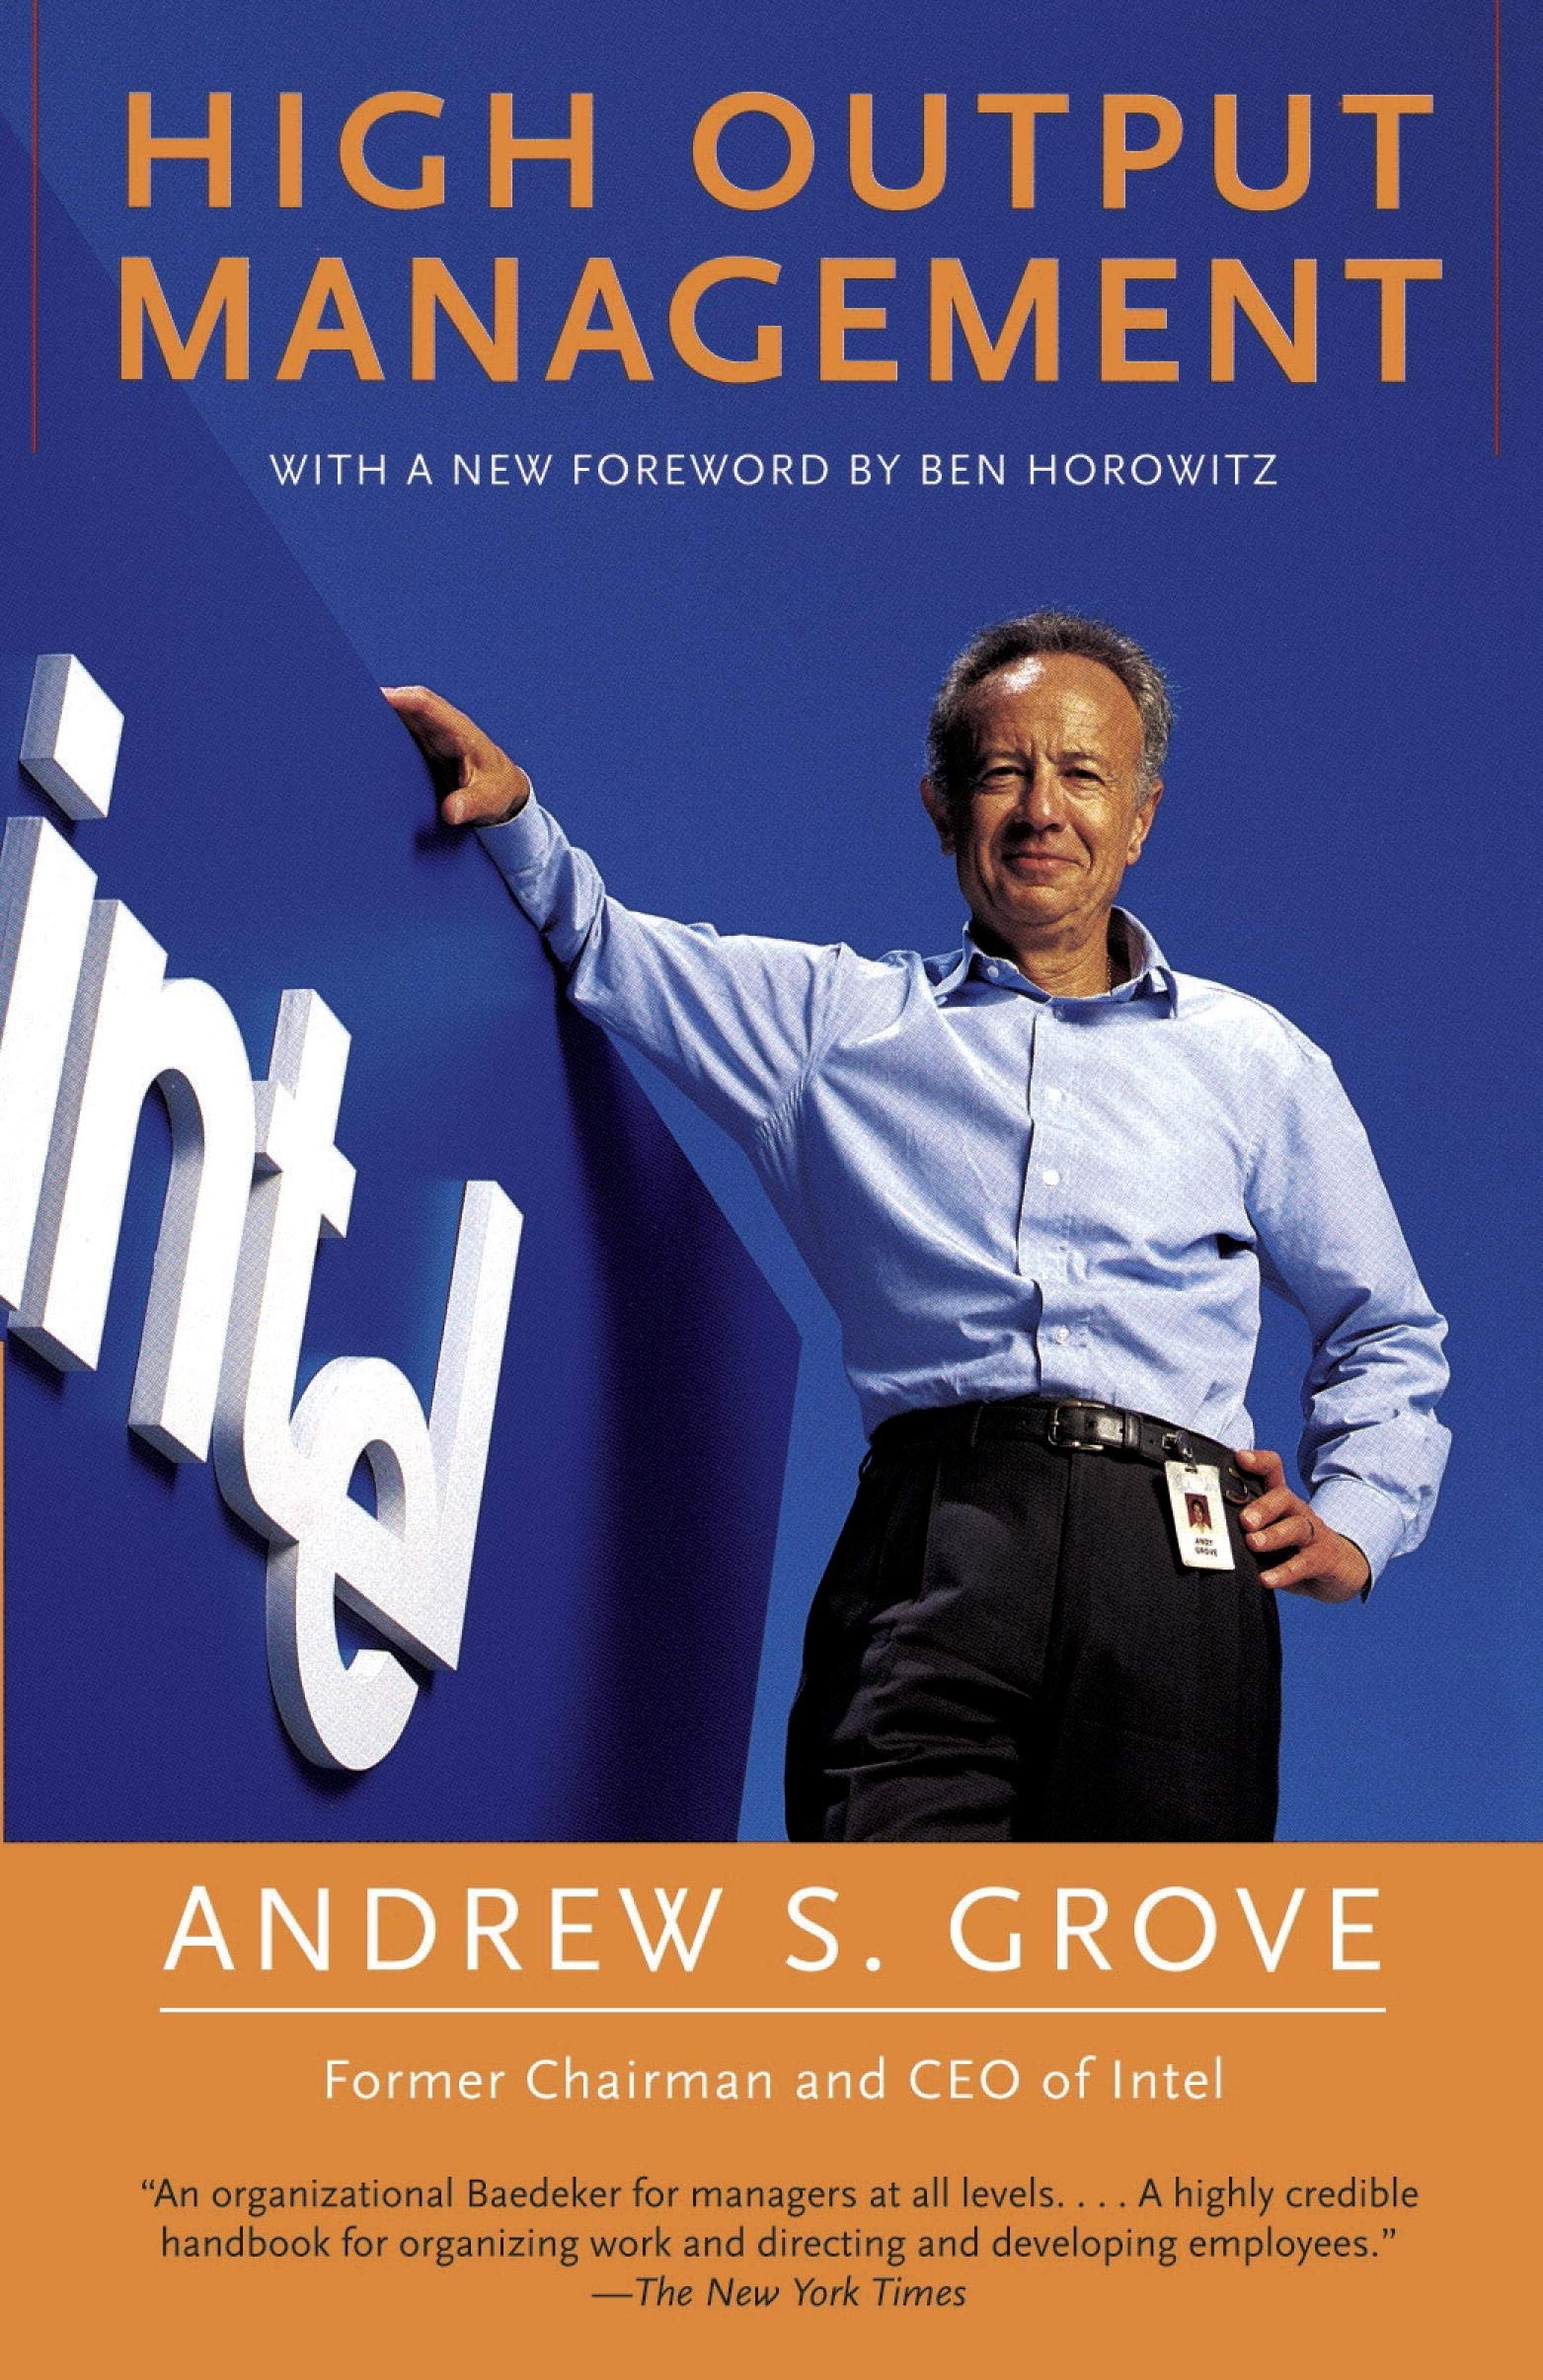 High Output Management: Grove, Andrew S.: 8601404570025: Amazon.com: Books